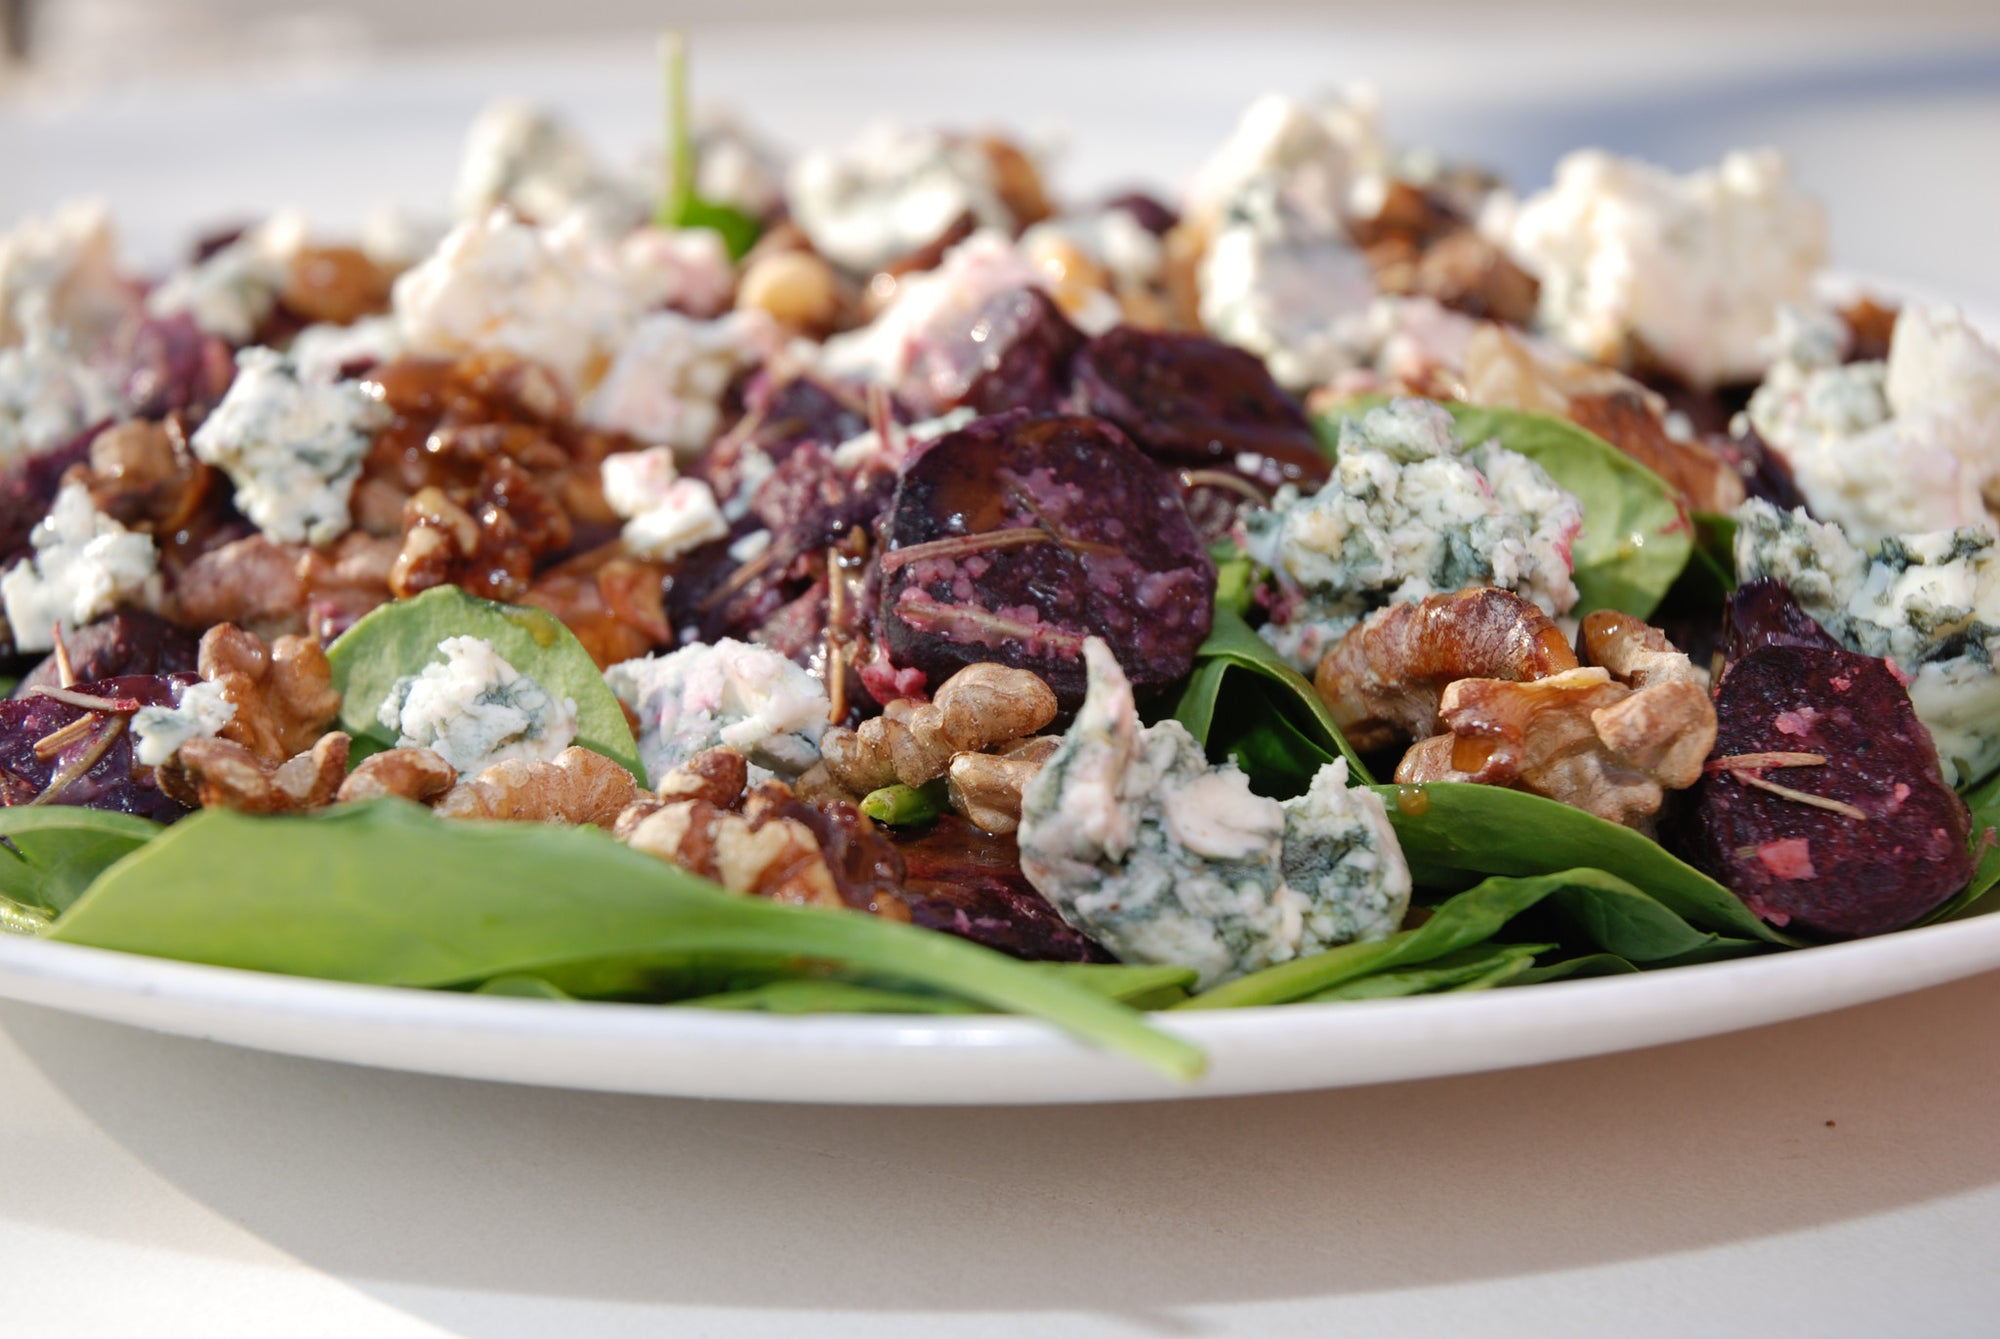 Roasted Beet and Blue Cheese Salad with Balsamic Dressing